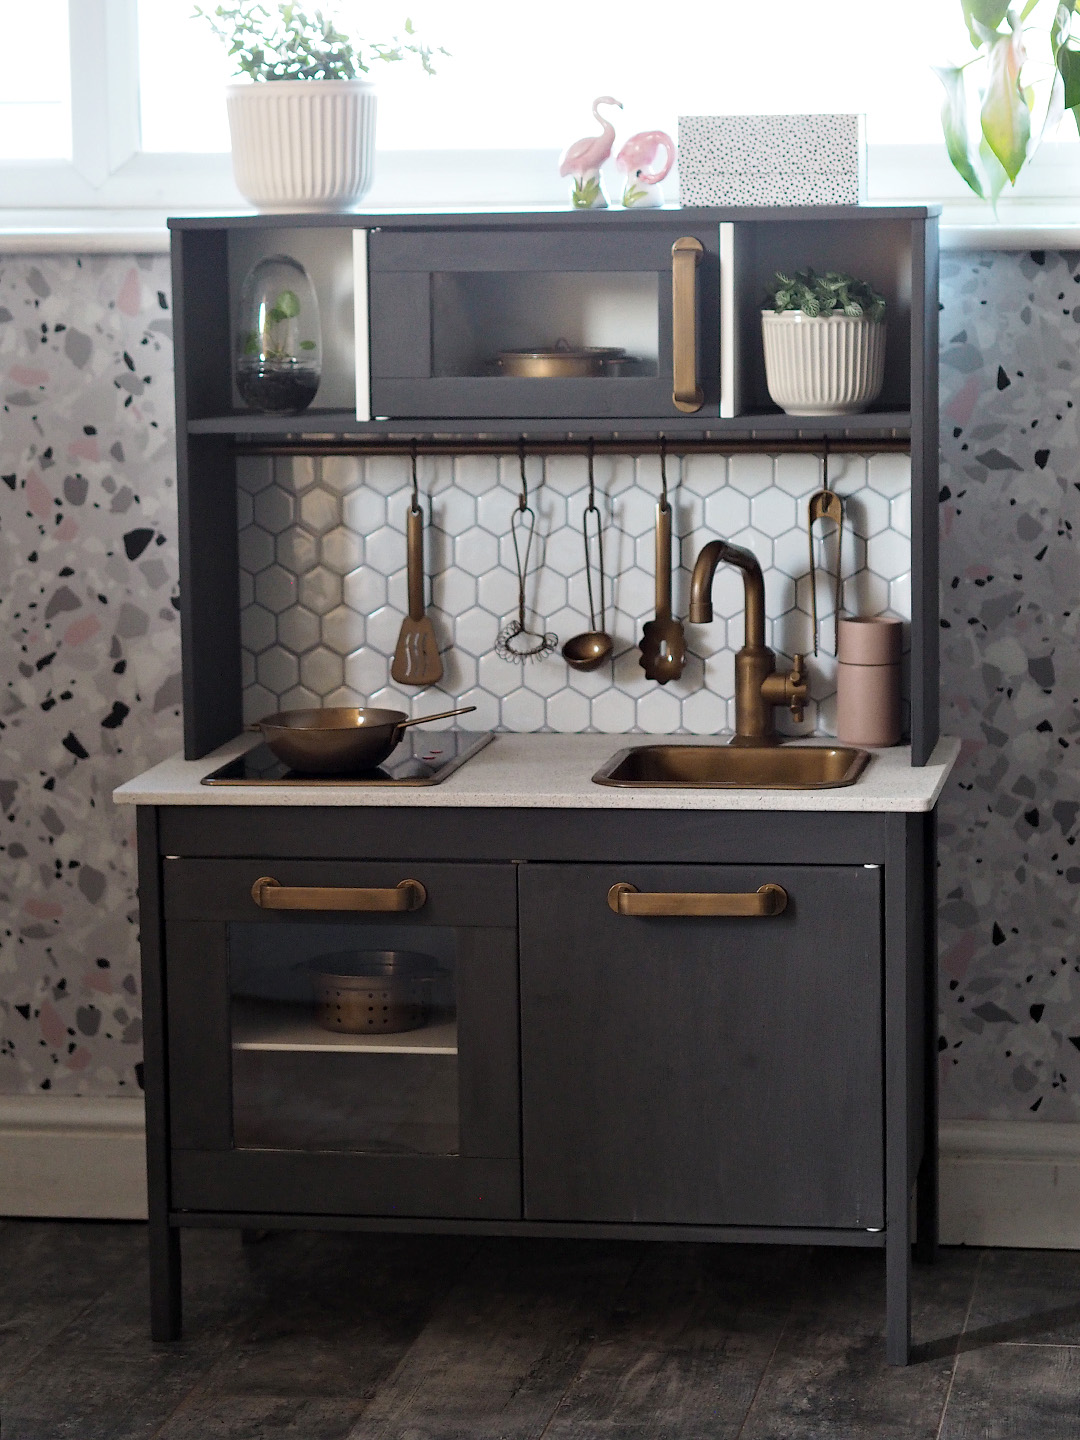 IKEA DUKTIG Play Kitchen with Aldi Upcycling Range